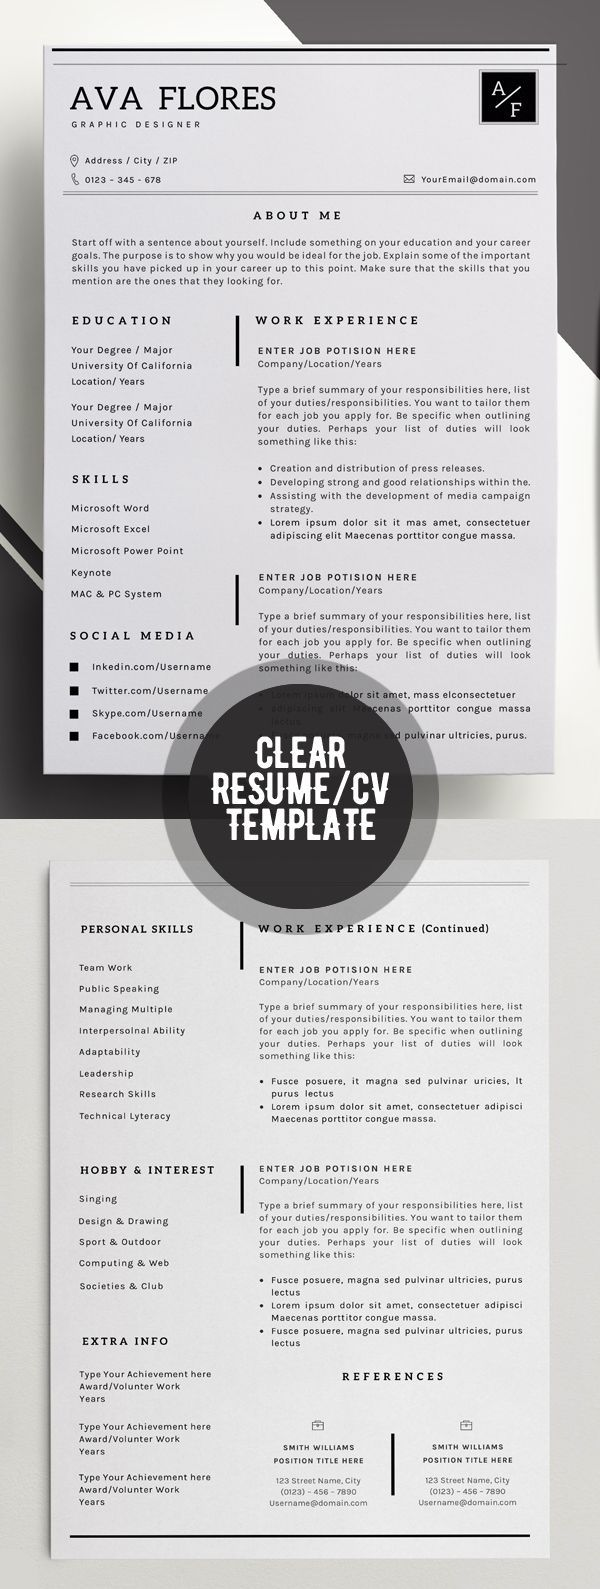 professional resume template cover letter for ms word modern cv design instant digital download a4 us letter buy one get one free